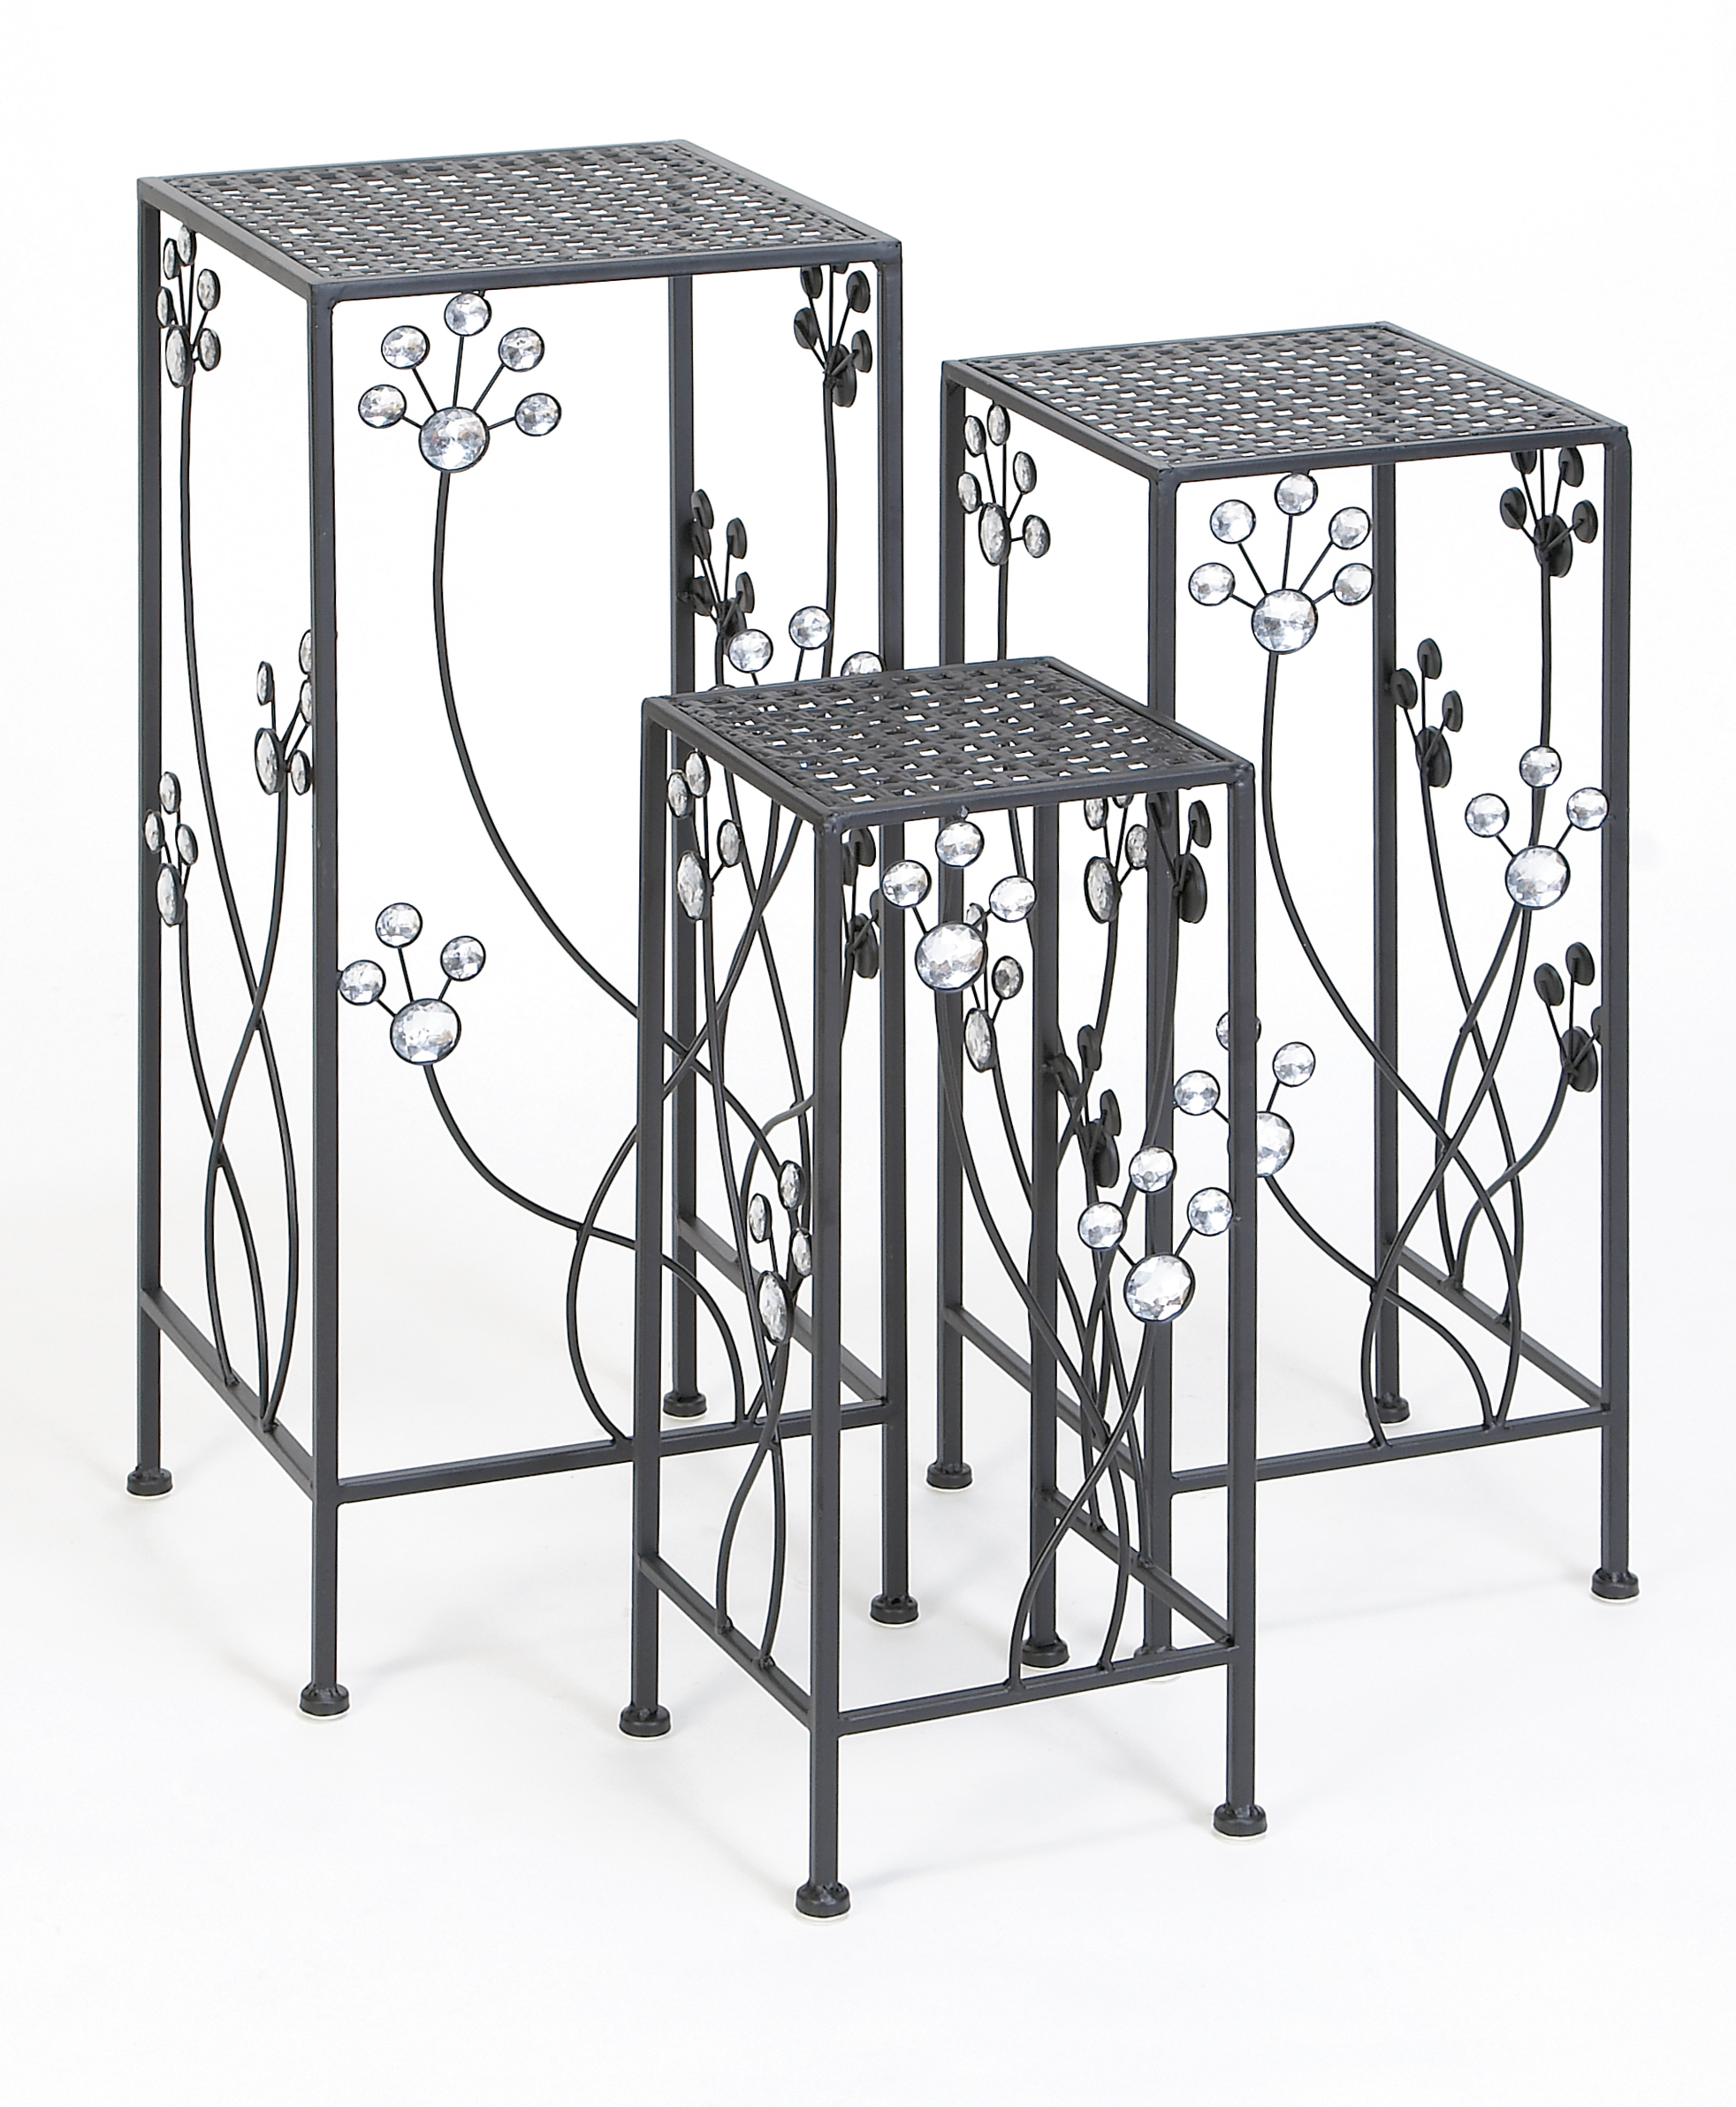 Decmode Modern 28, 24 and 20 Inch Square Metal Plant Stands with Crystal Accents Set of 3 by DecMode